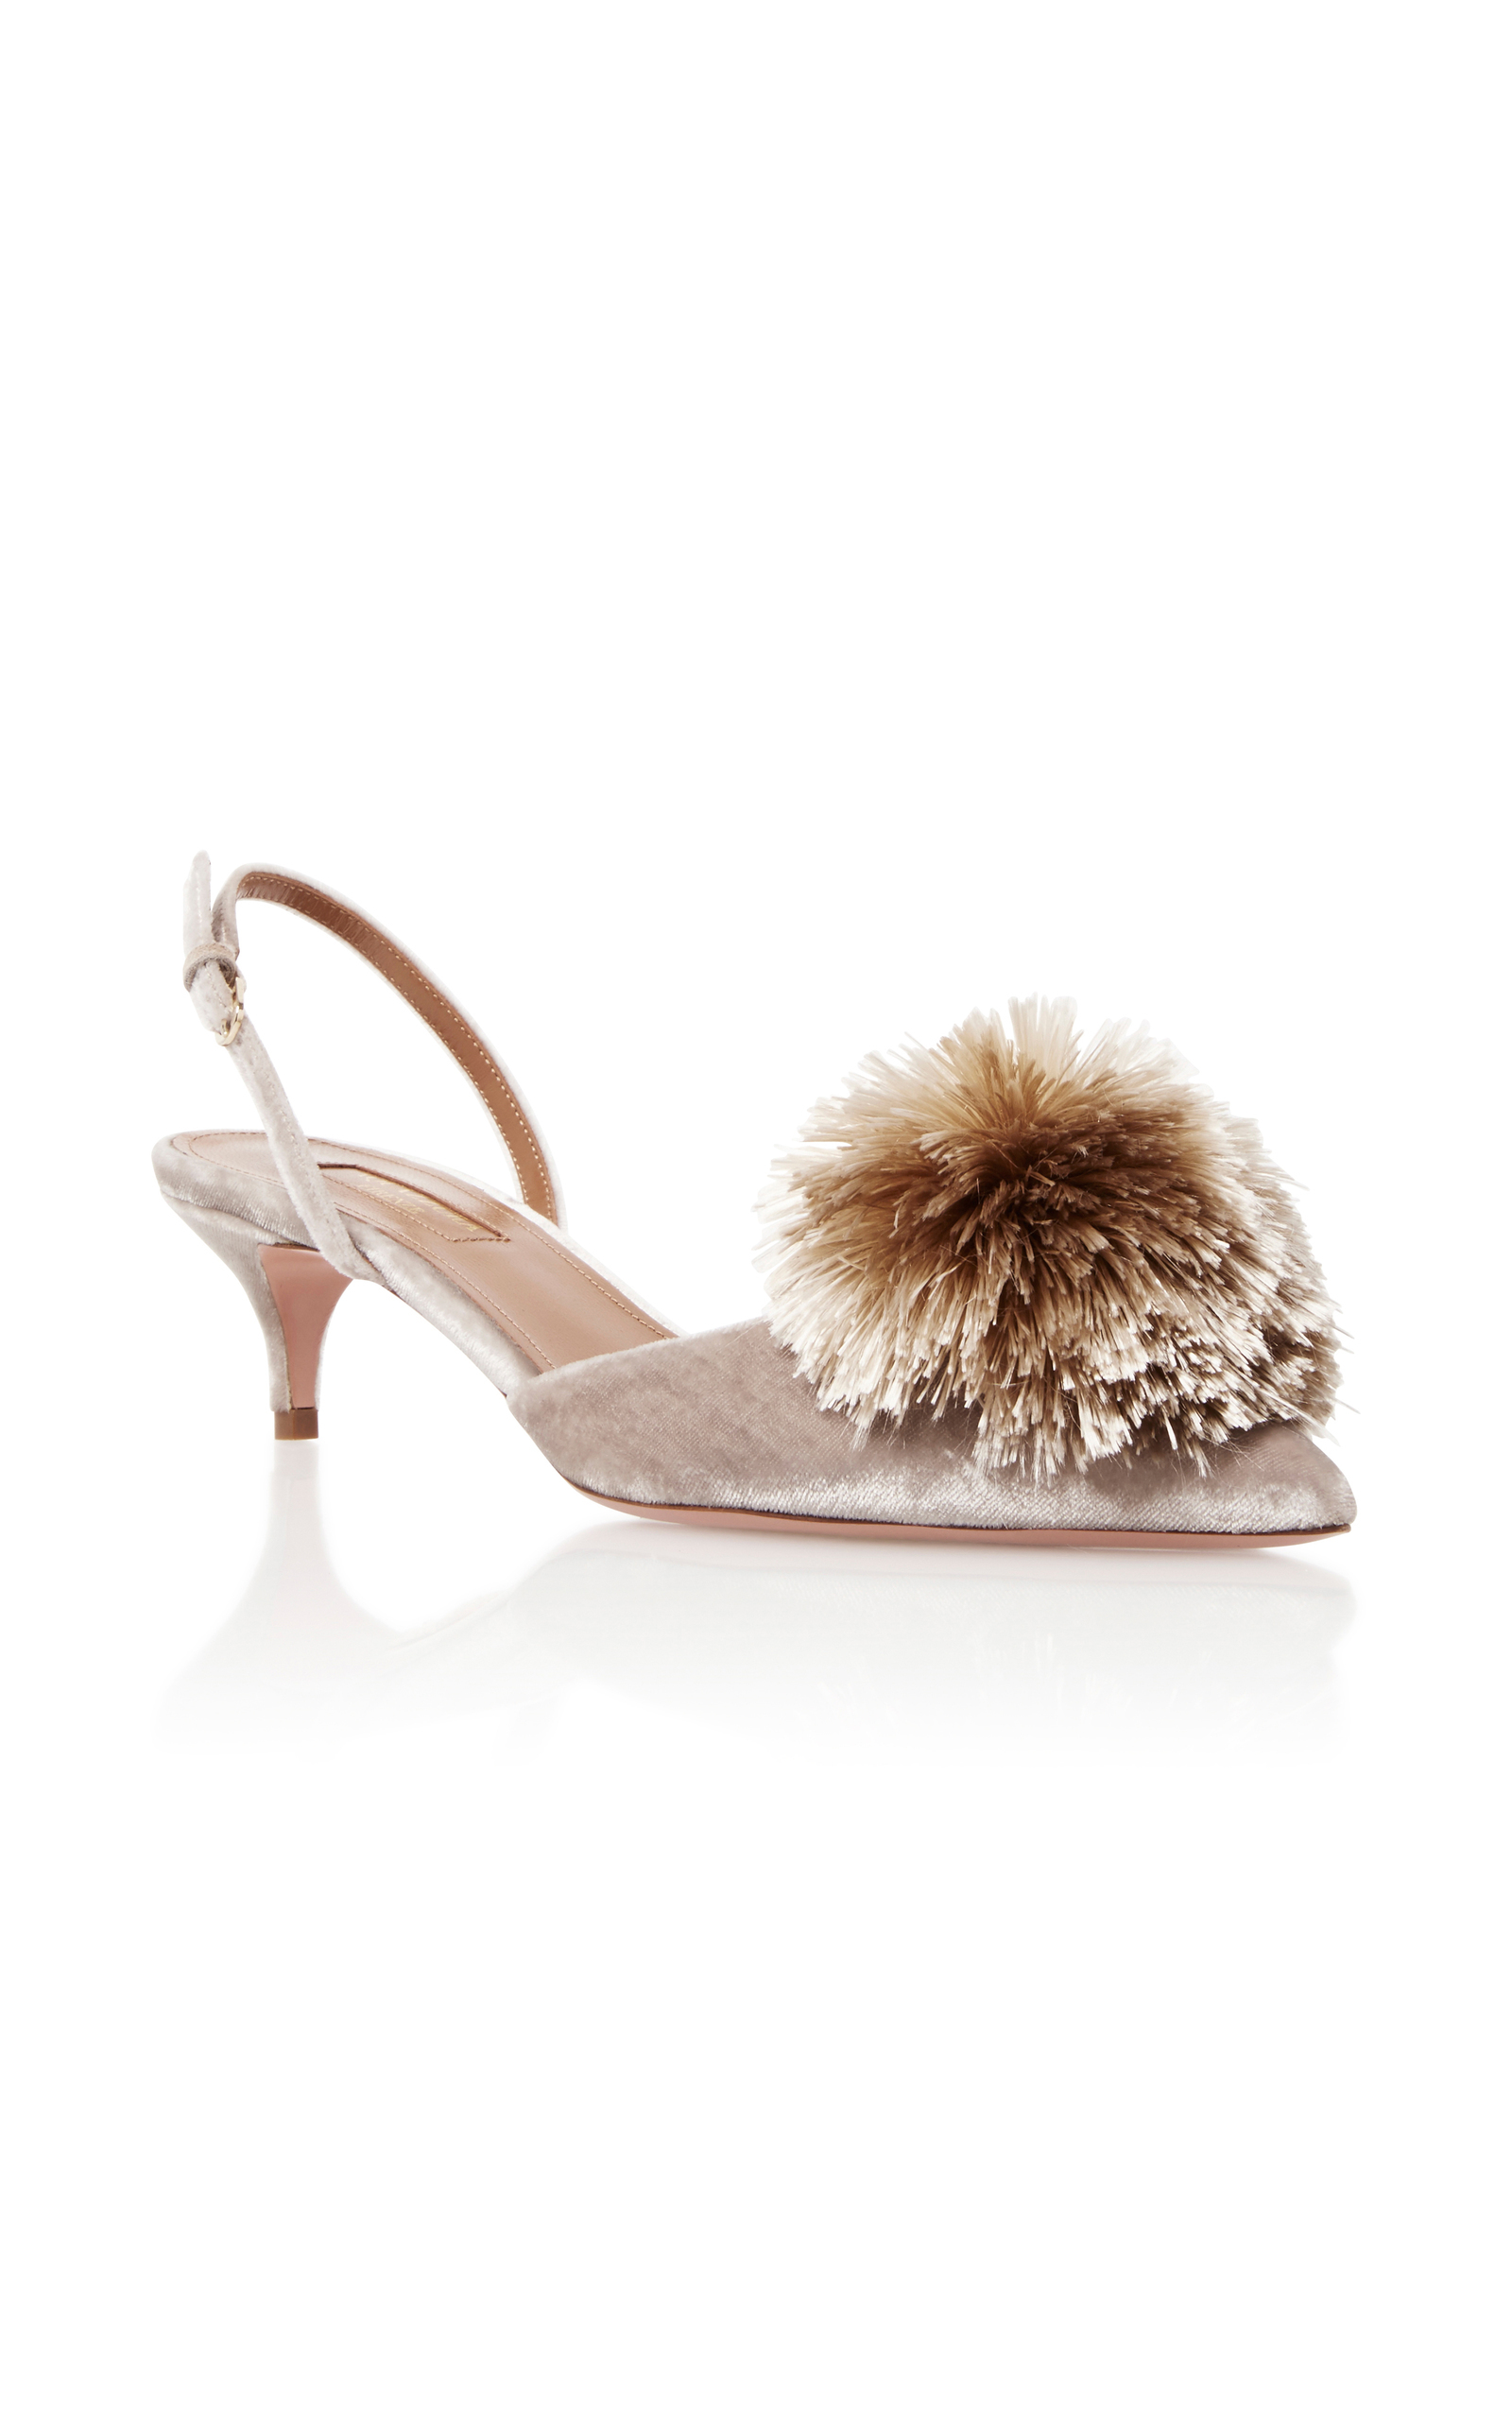 7f595ae3c8c Aquazzura Powder Puff Pompom Pump In Light Gray